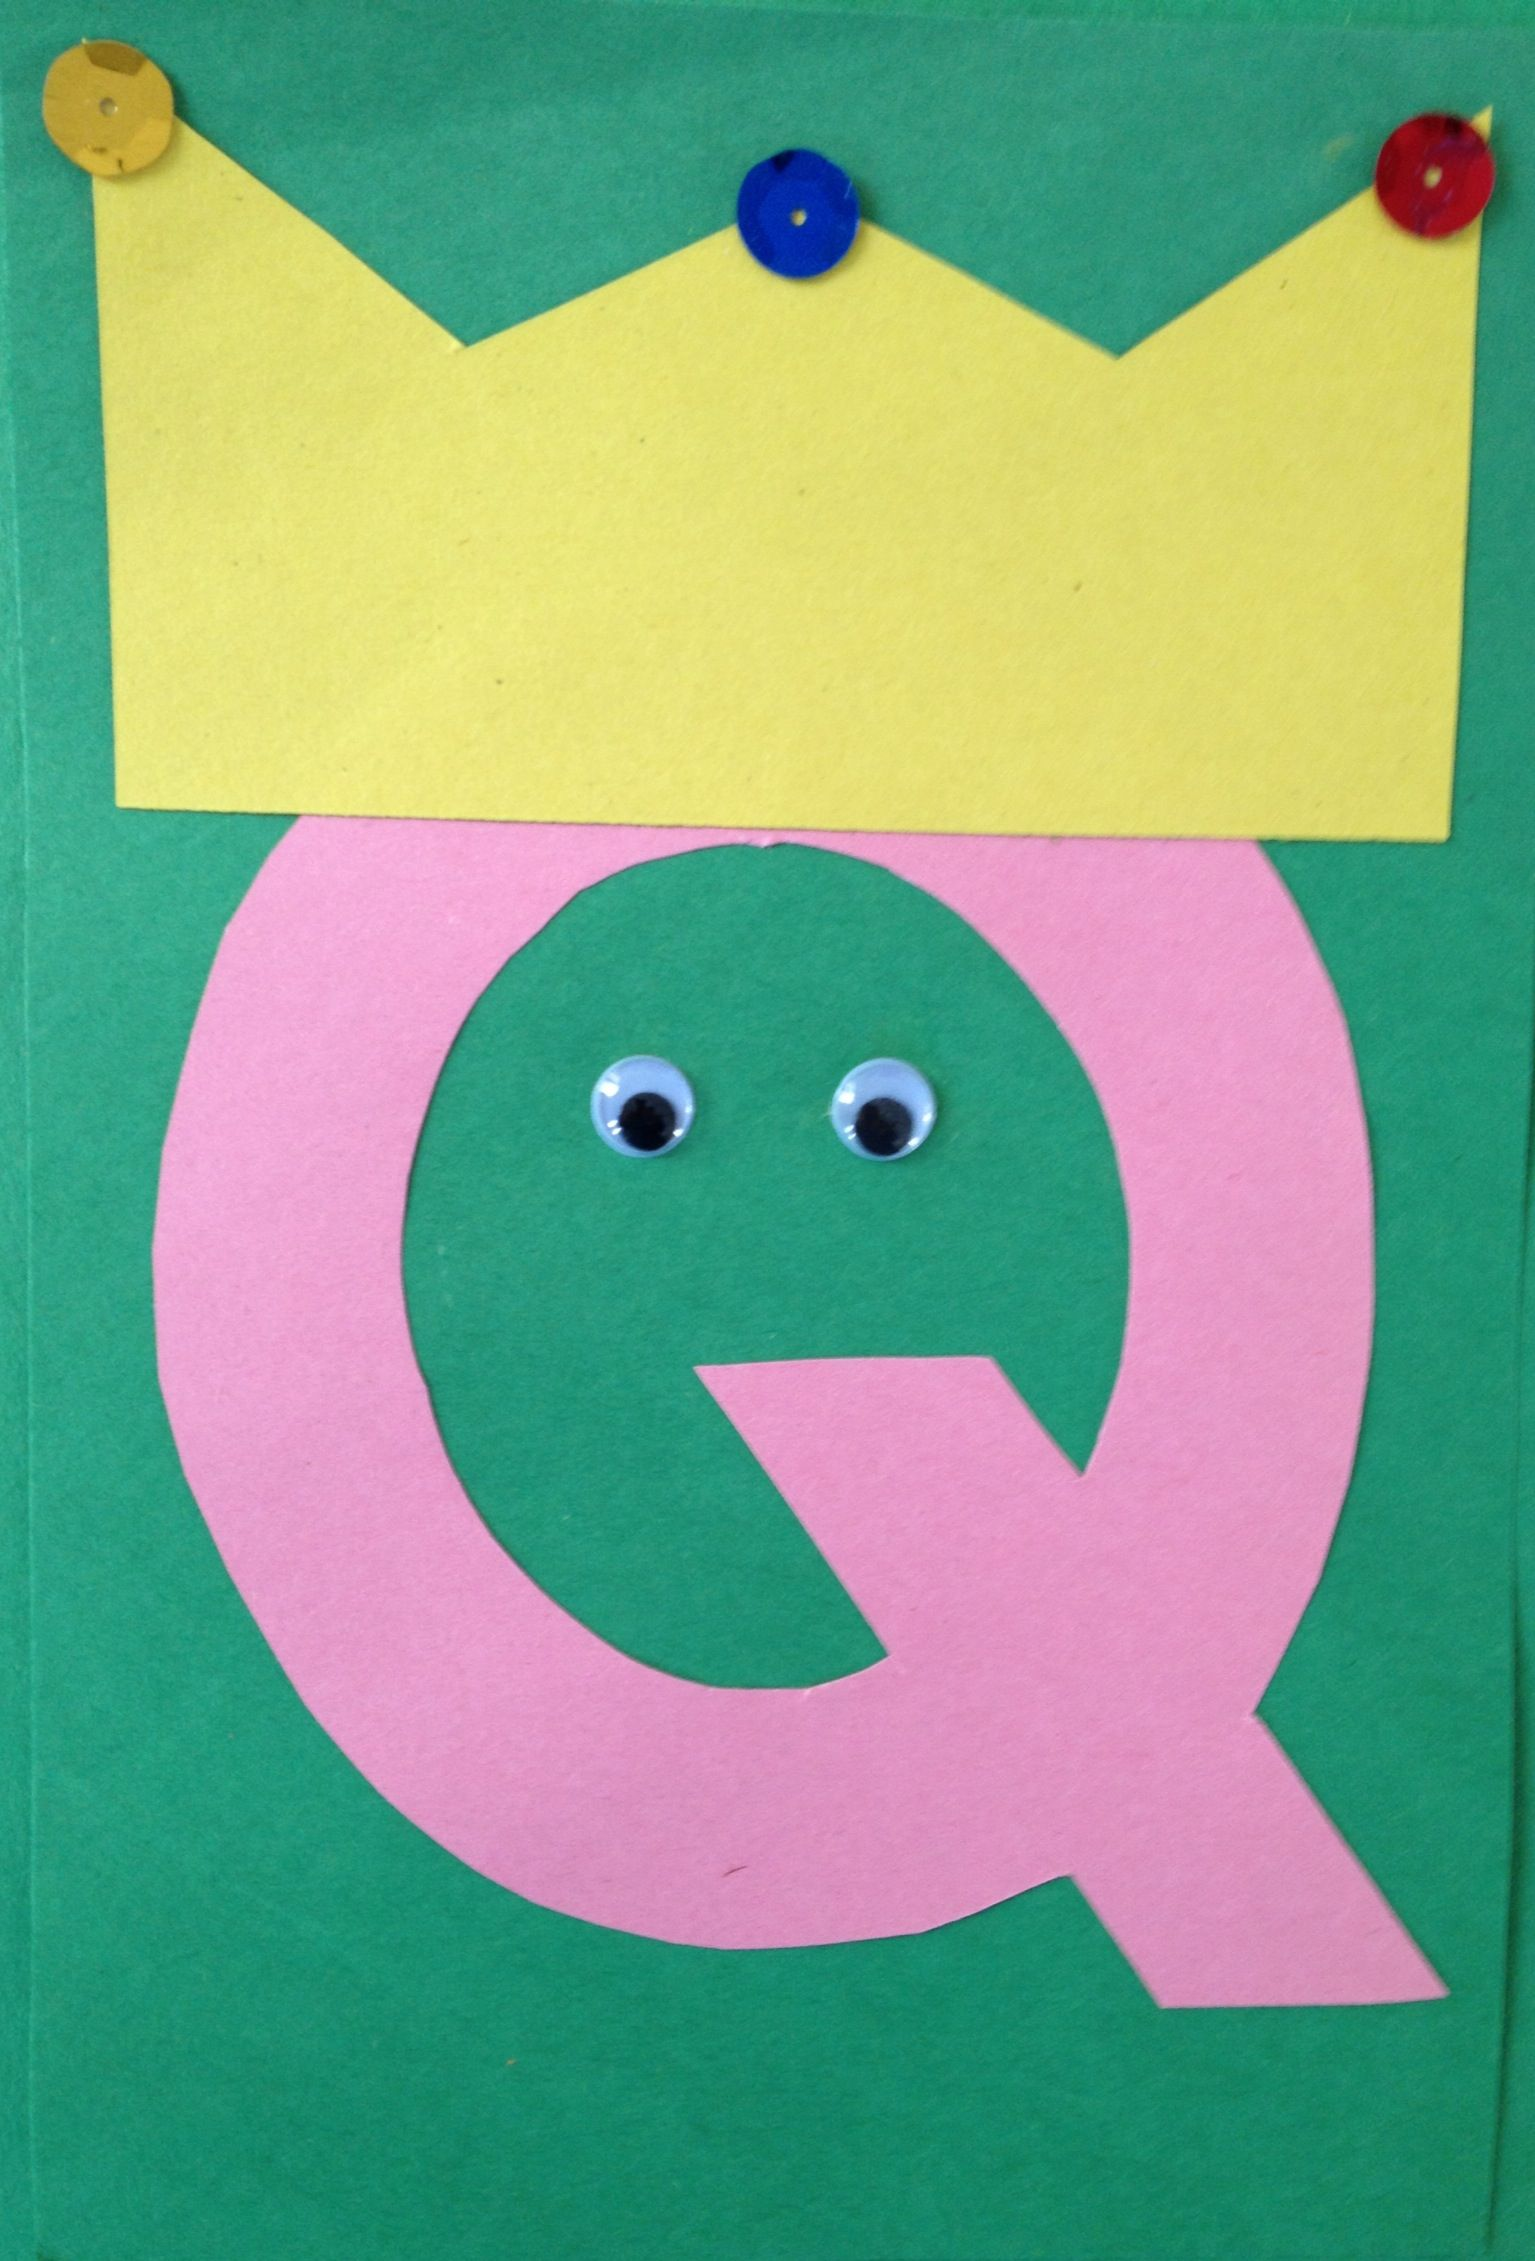 Preschool Letter Q Craft | Preschool Letter Crafts | Preschool